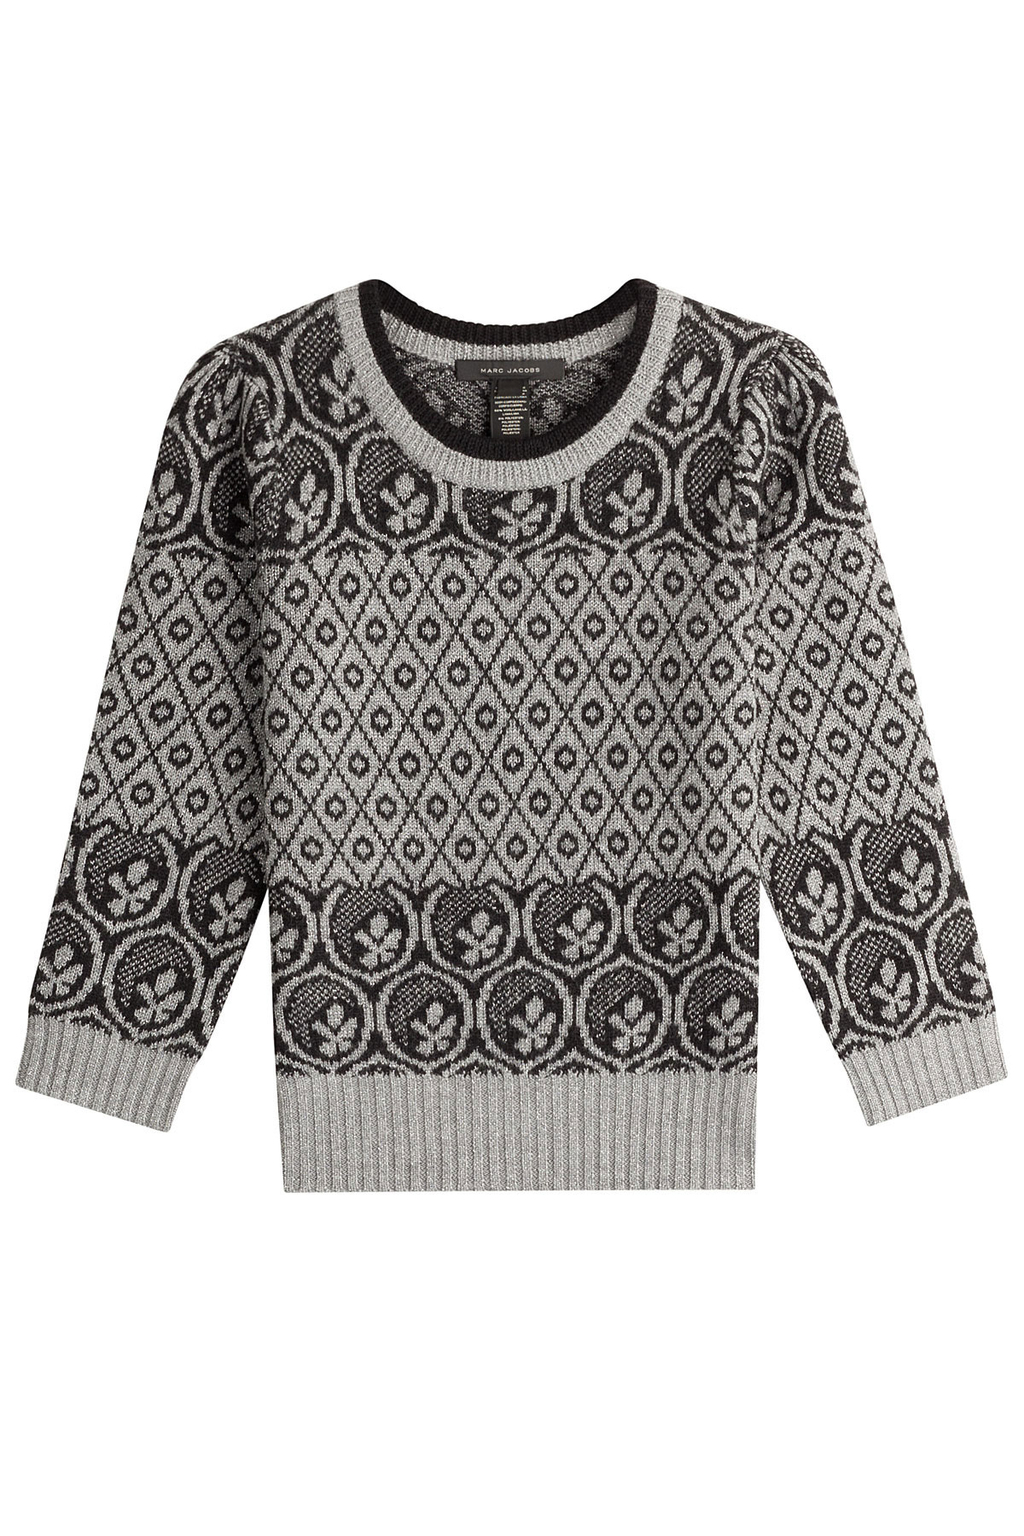 Wool Pullover - style: standard; predominant colour: mid grey; secondary colour: light grey; occasions: casual; length: standard; fibres: wool - 100%; fit: standard fit; neckline: crew; sleeve length: long sleeve; sleeve style: standard; texture group: knits/crochet; pattern type: knitted - big stitch; pattern: patterned/print; multicoloured: multicoloured; season: a/w 2016; wardrobe: highlight